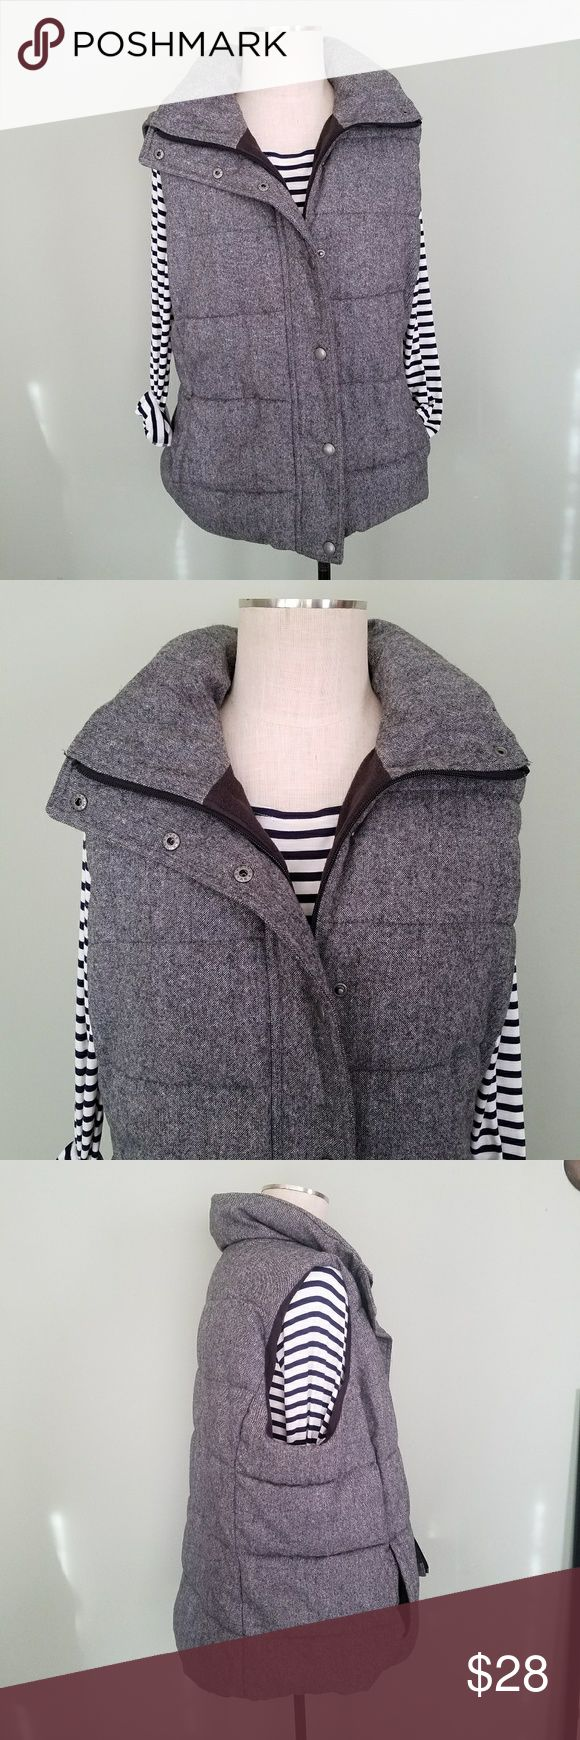 """Old Navy Plus Size Tweed Puffer Vest Old Navy. Women's Plus Size XXL (2X). Quilted Tweed Puffer Vest. Fleece lined.  Medium Charcoal / Gray / Black Heathered.  Full zip up front with snap button overlay. Functioning front pockets. 55% Recycled wool. 35% Polyester. 10% Other. Great condition! Bust- 26"""" Length- 26"""" Old Navy Jackets & Coats Vests"""